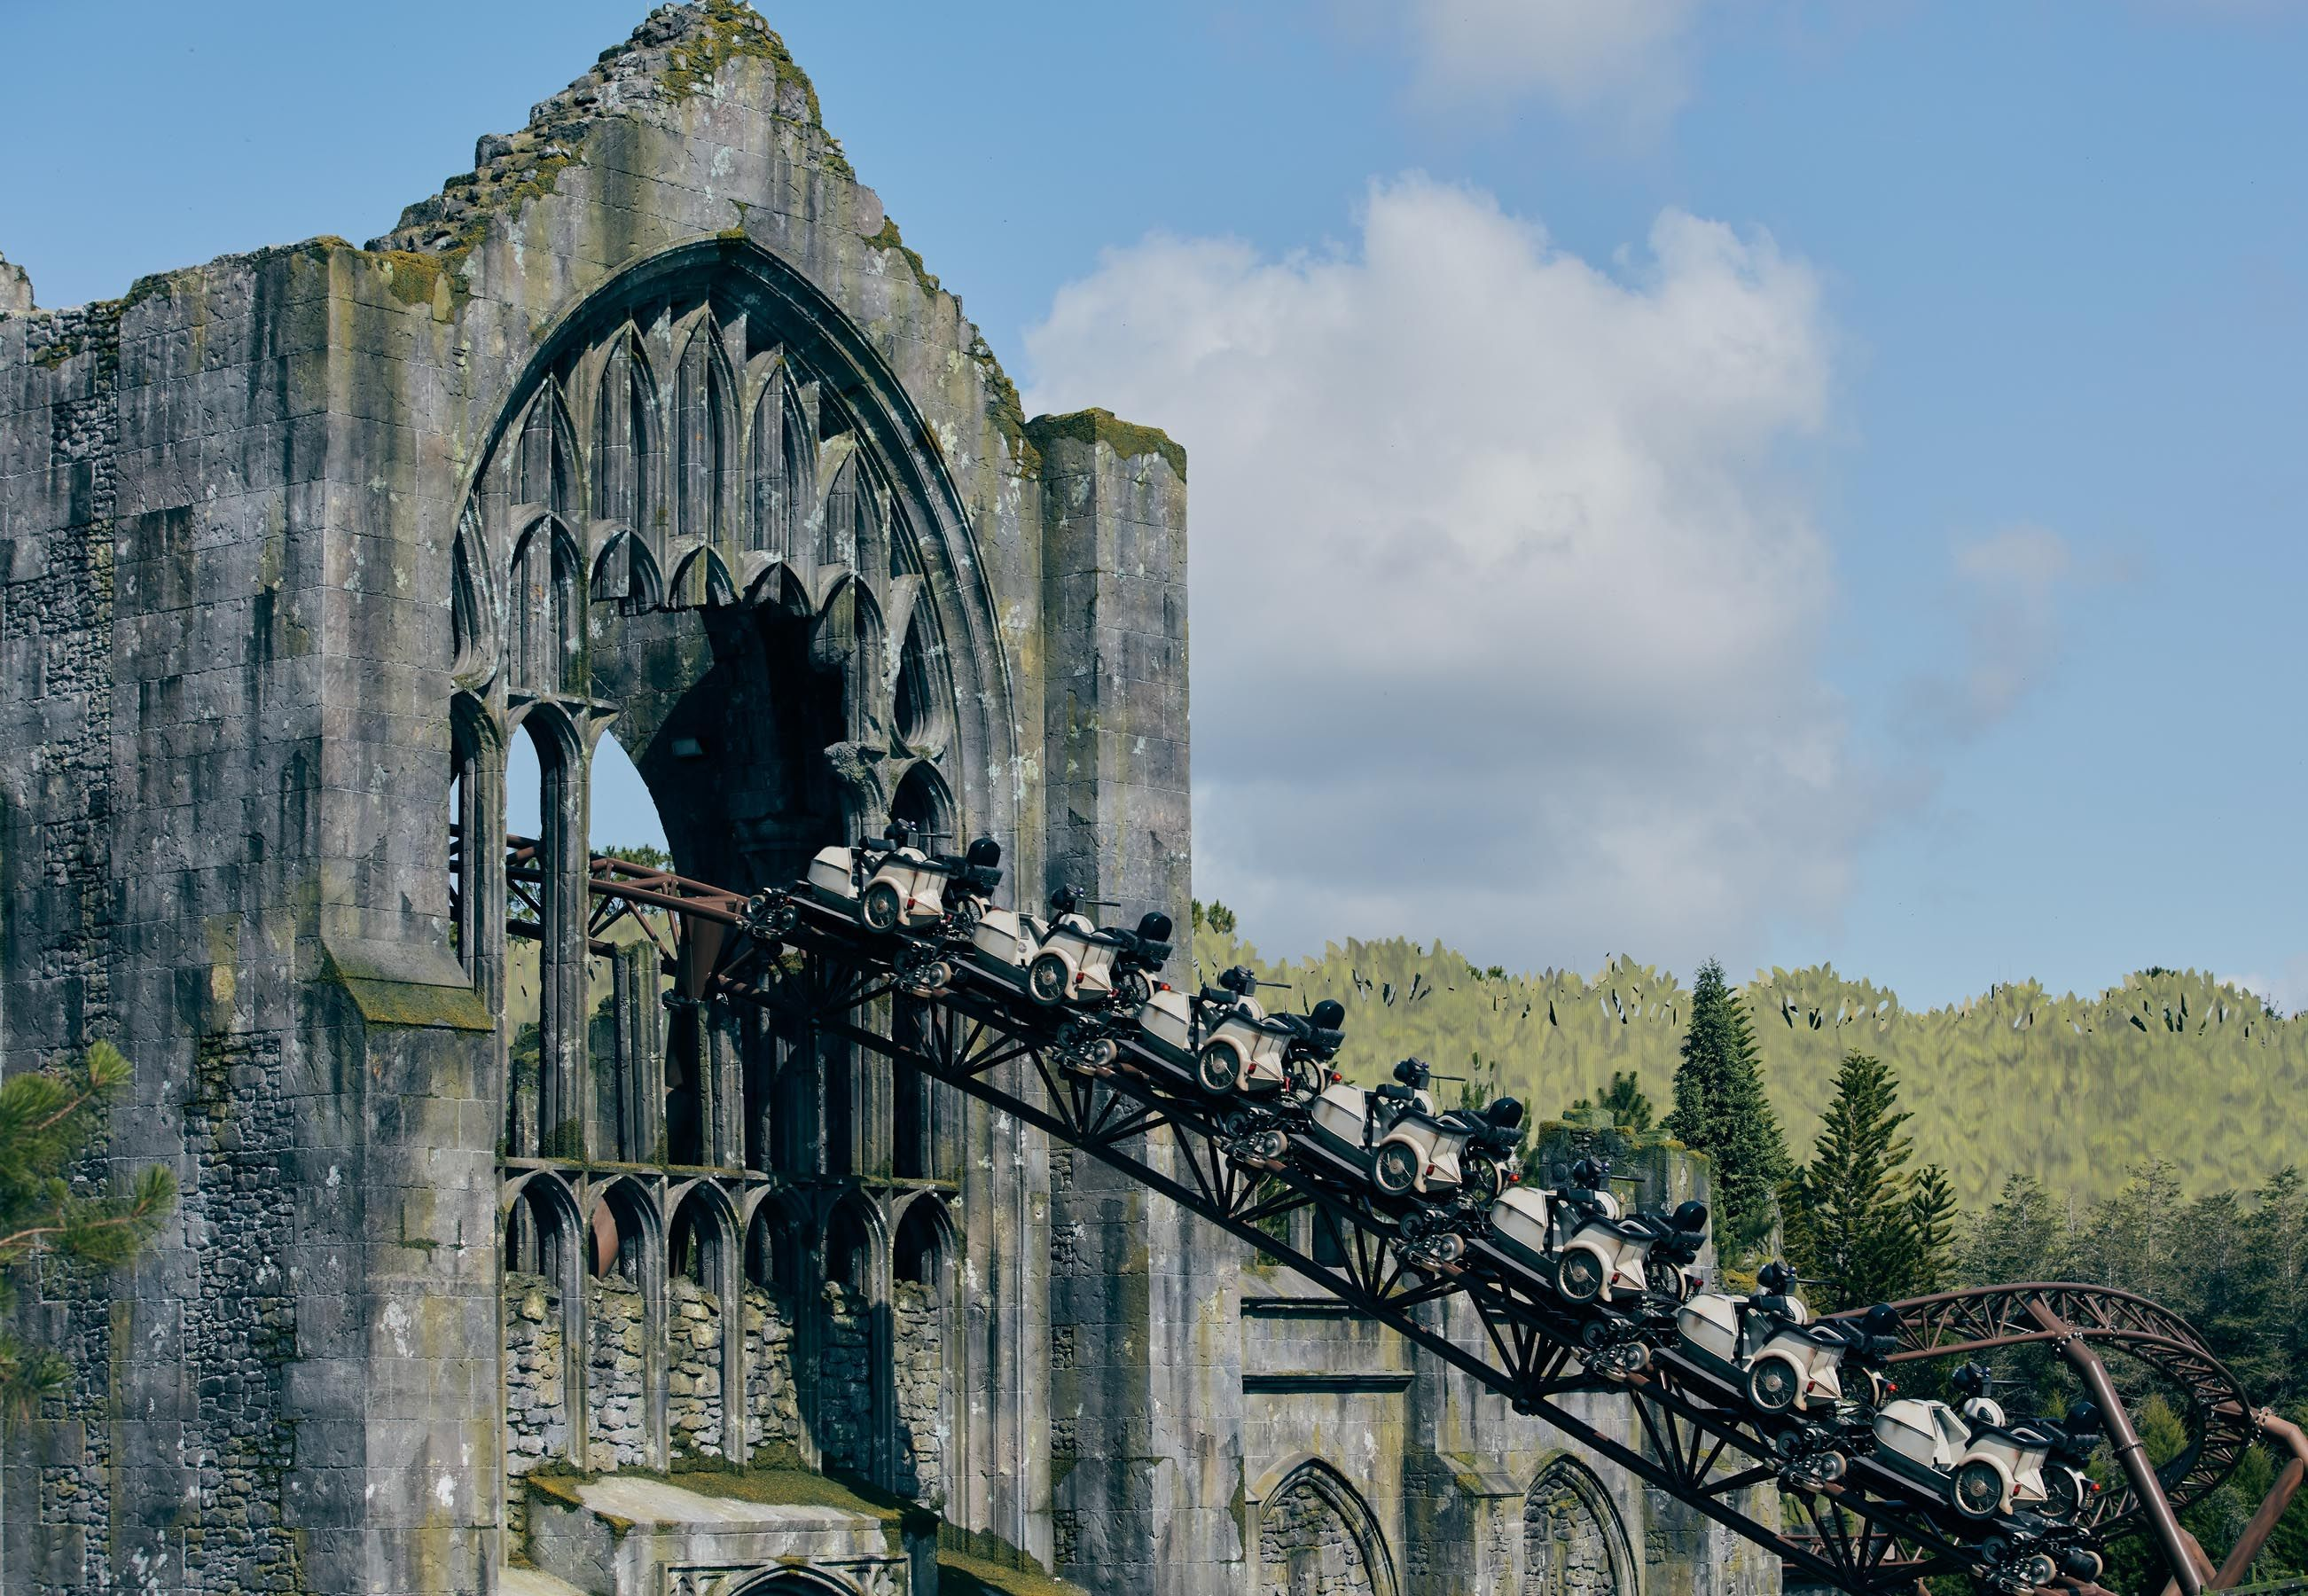 Everything You Need To Know About Hagrid S Motorbike Adventure At Universal Studios See The Photos Islands Of Adventure Universal Islands Of Adventure Wizarding World Of Harry Potter